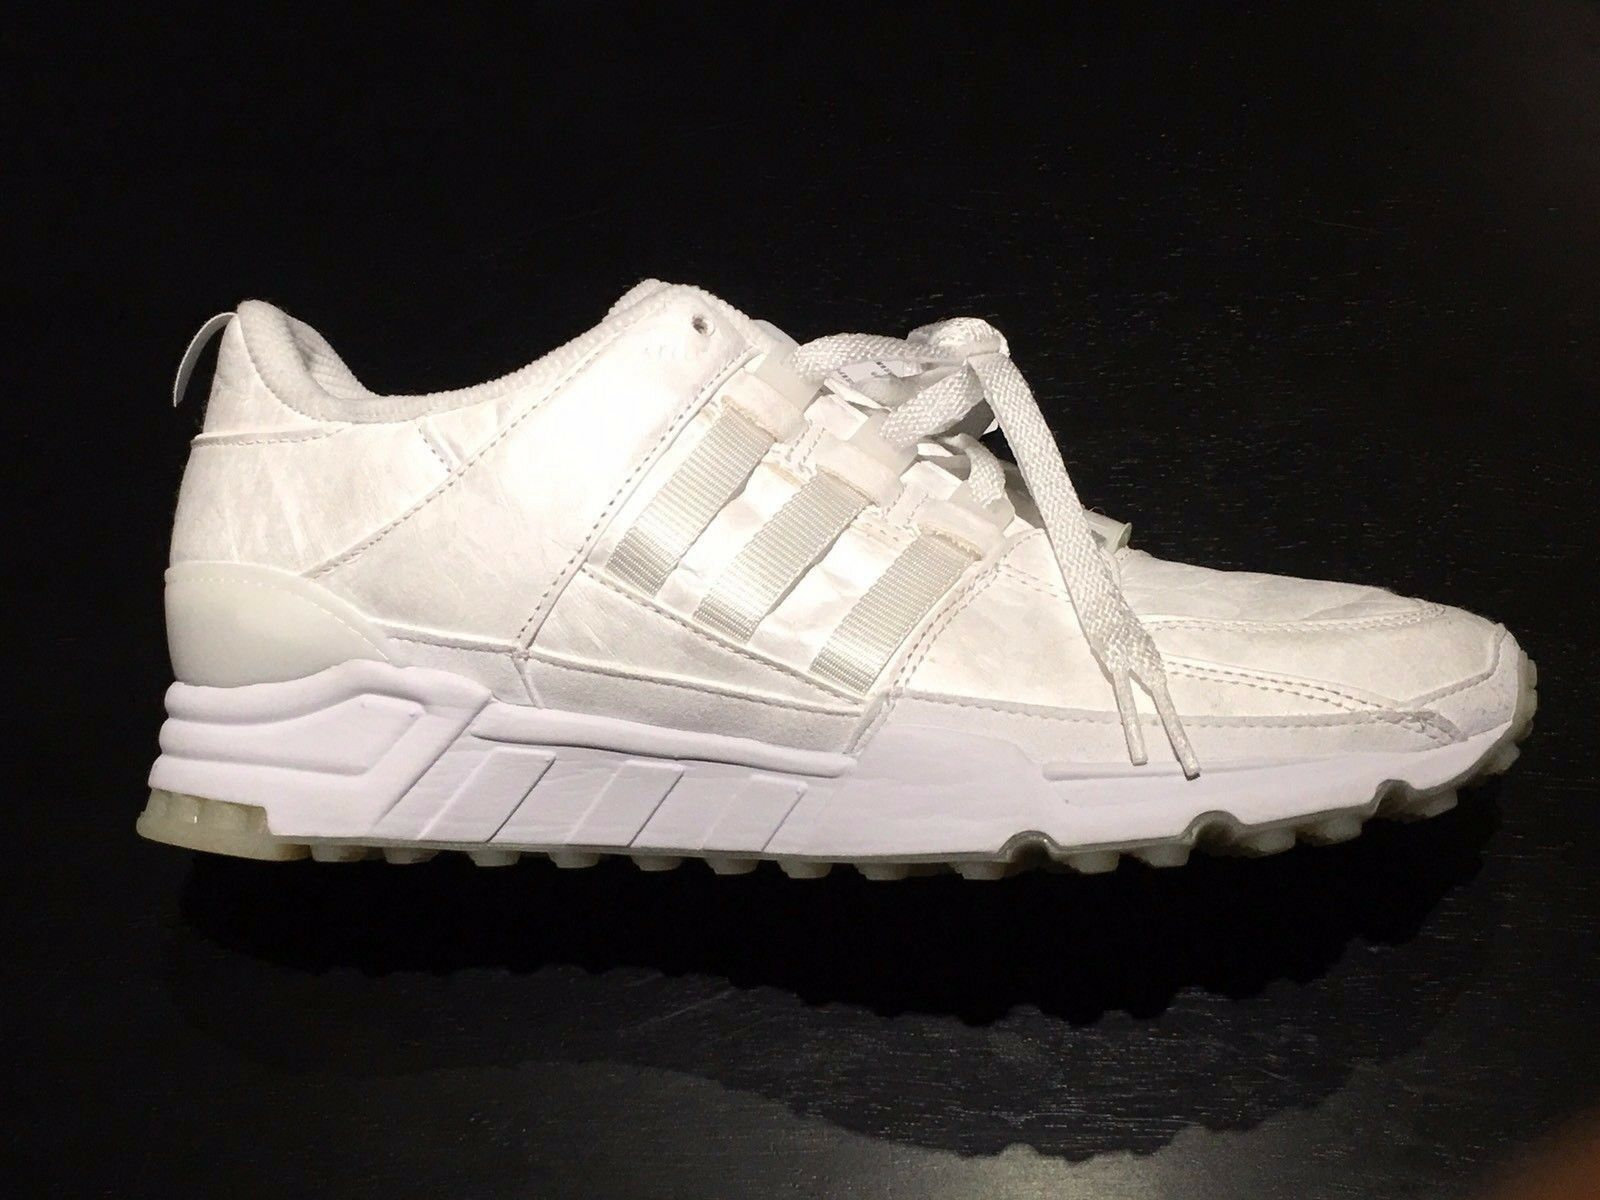 Adidas Originals EQUIPMENT RUNNING SUPPORT White EQT 26.2 B27575 Mens Rare (11)